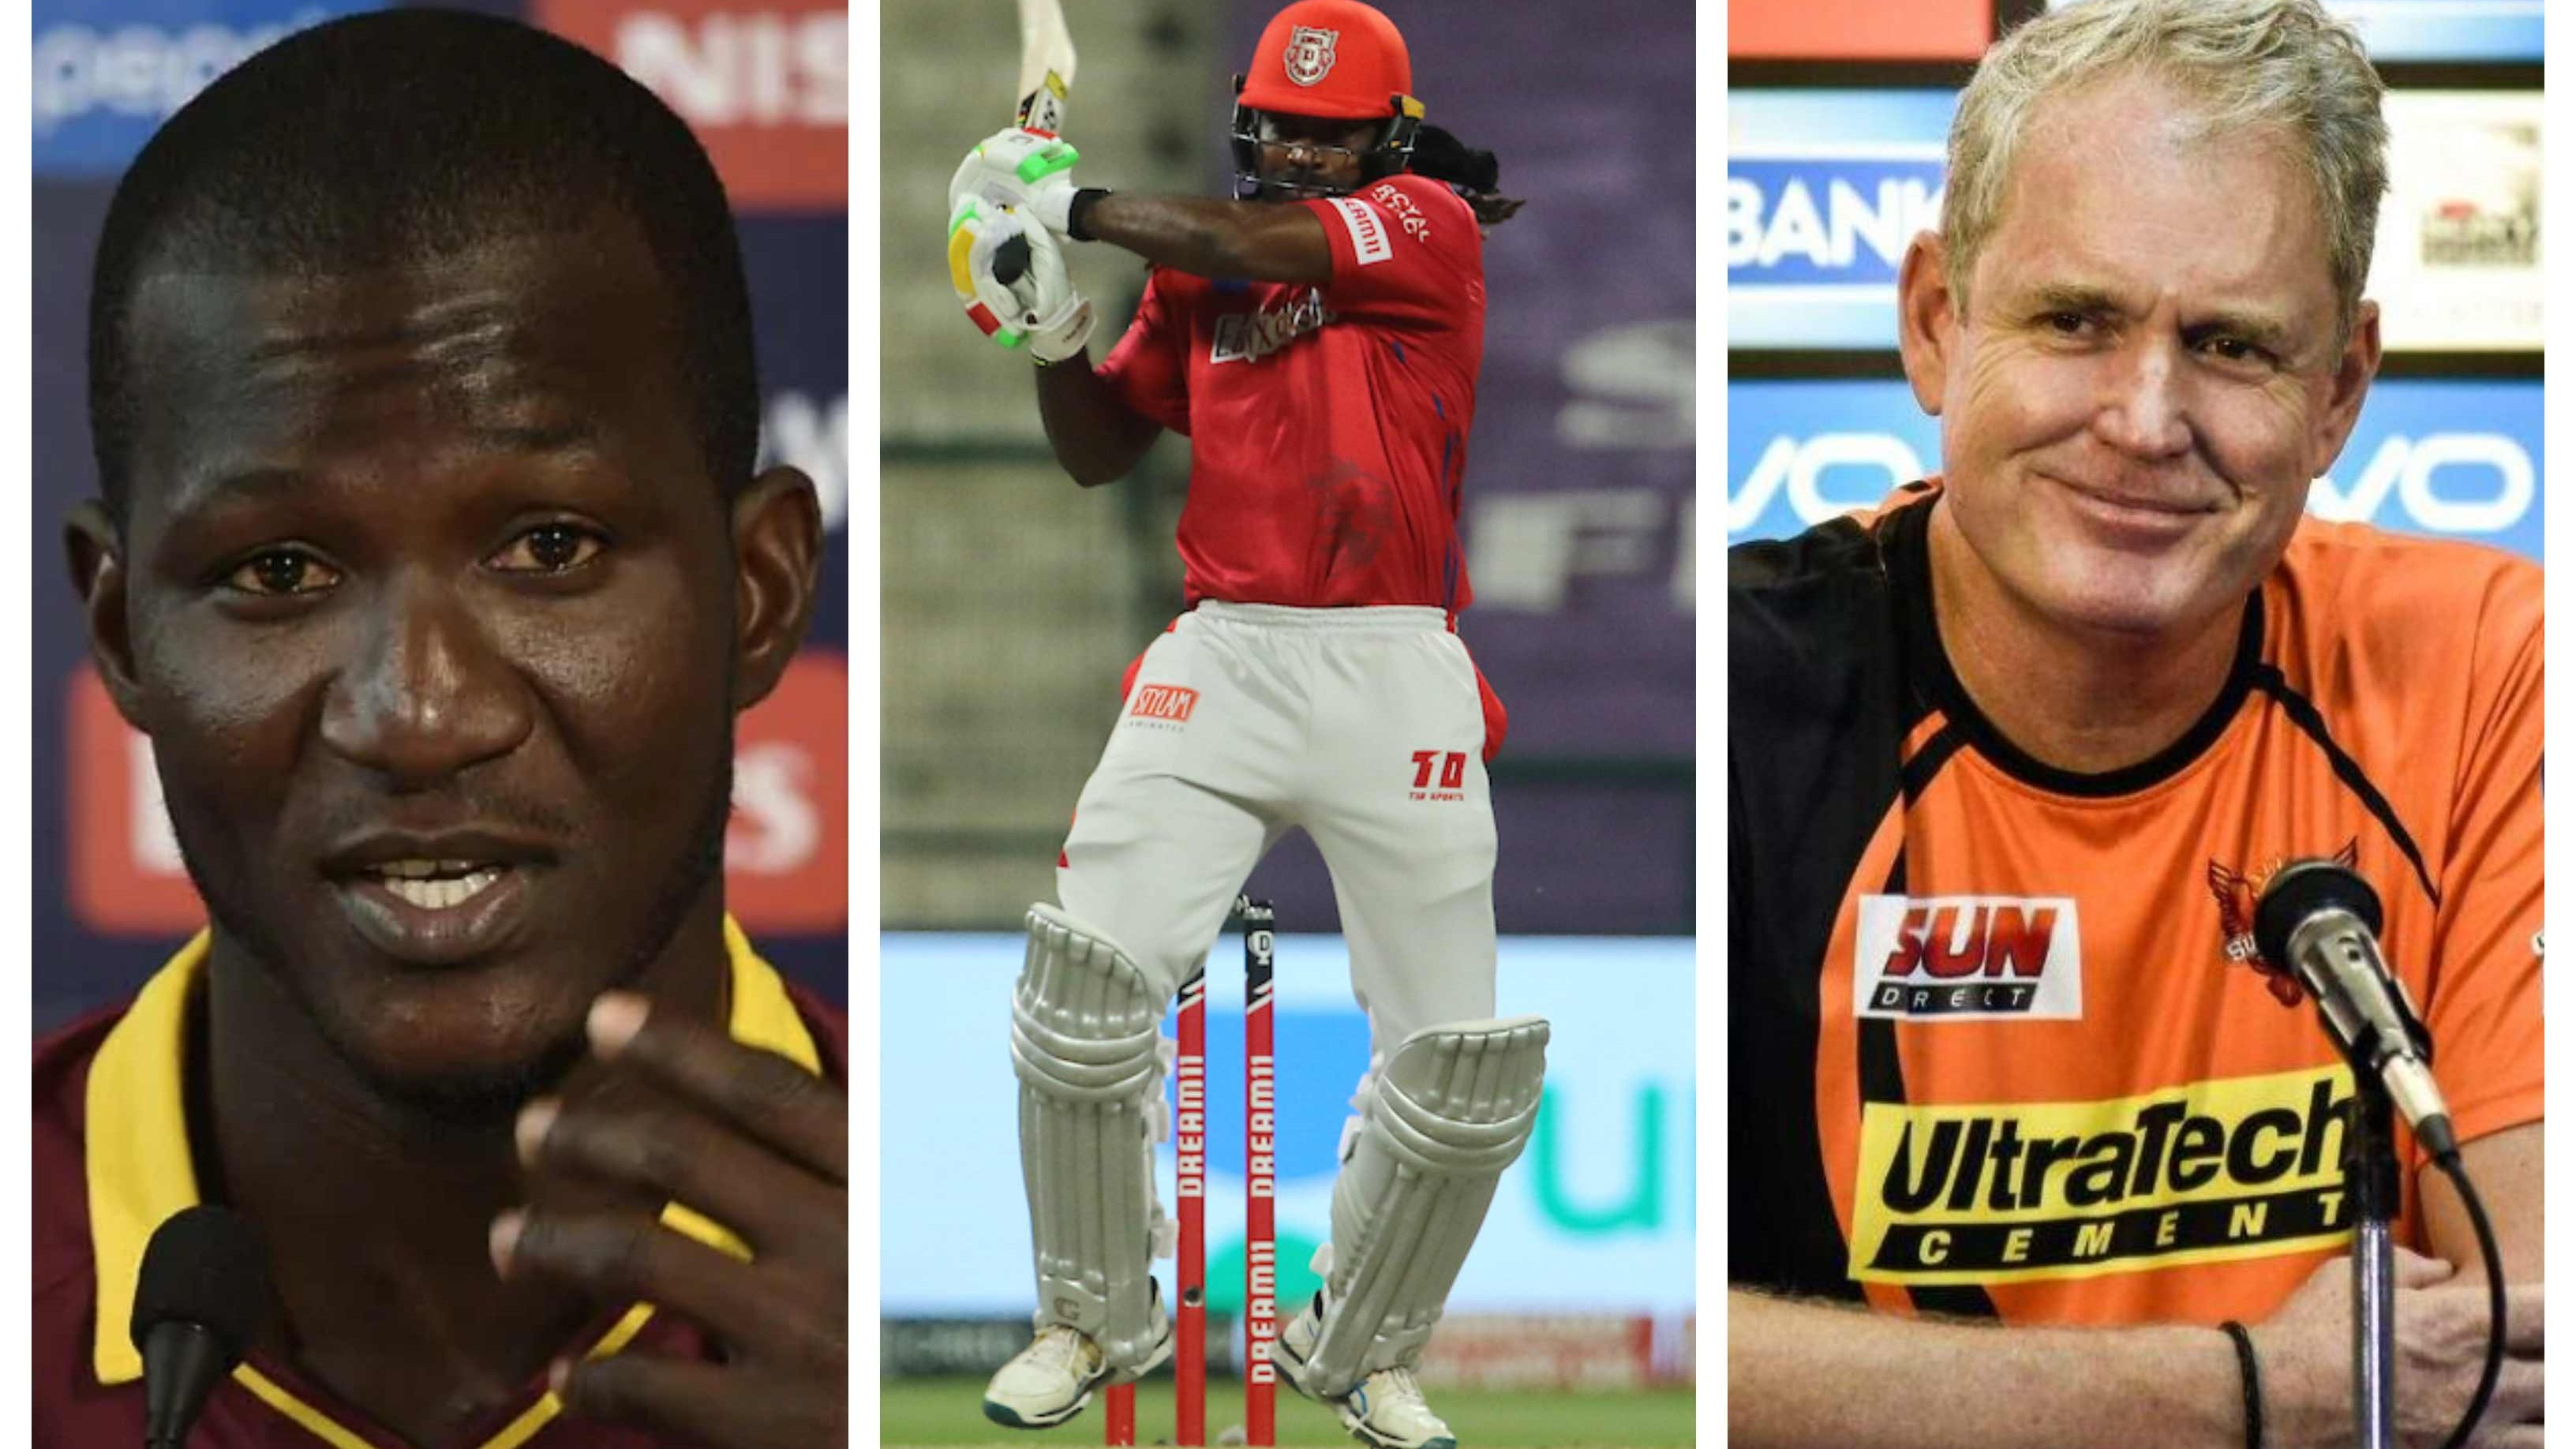 IPL 2020: Cricket fraternity reacts as Chris Gayle completes 1000 T20 sixes during his whirlwind 99 versus RR